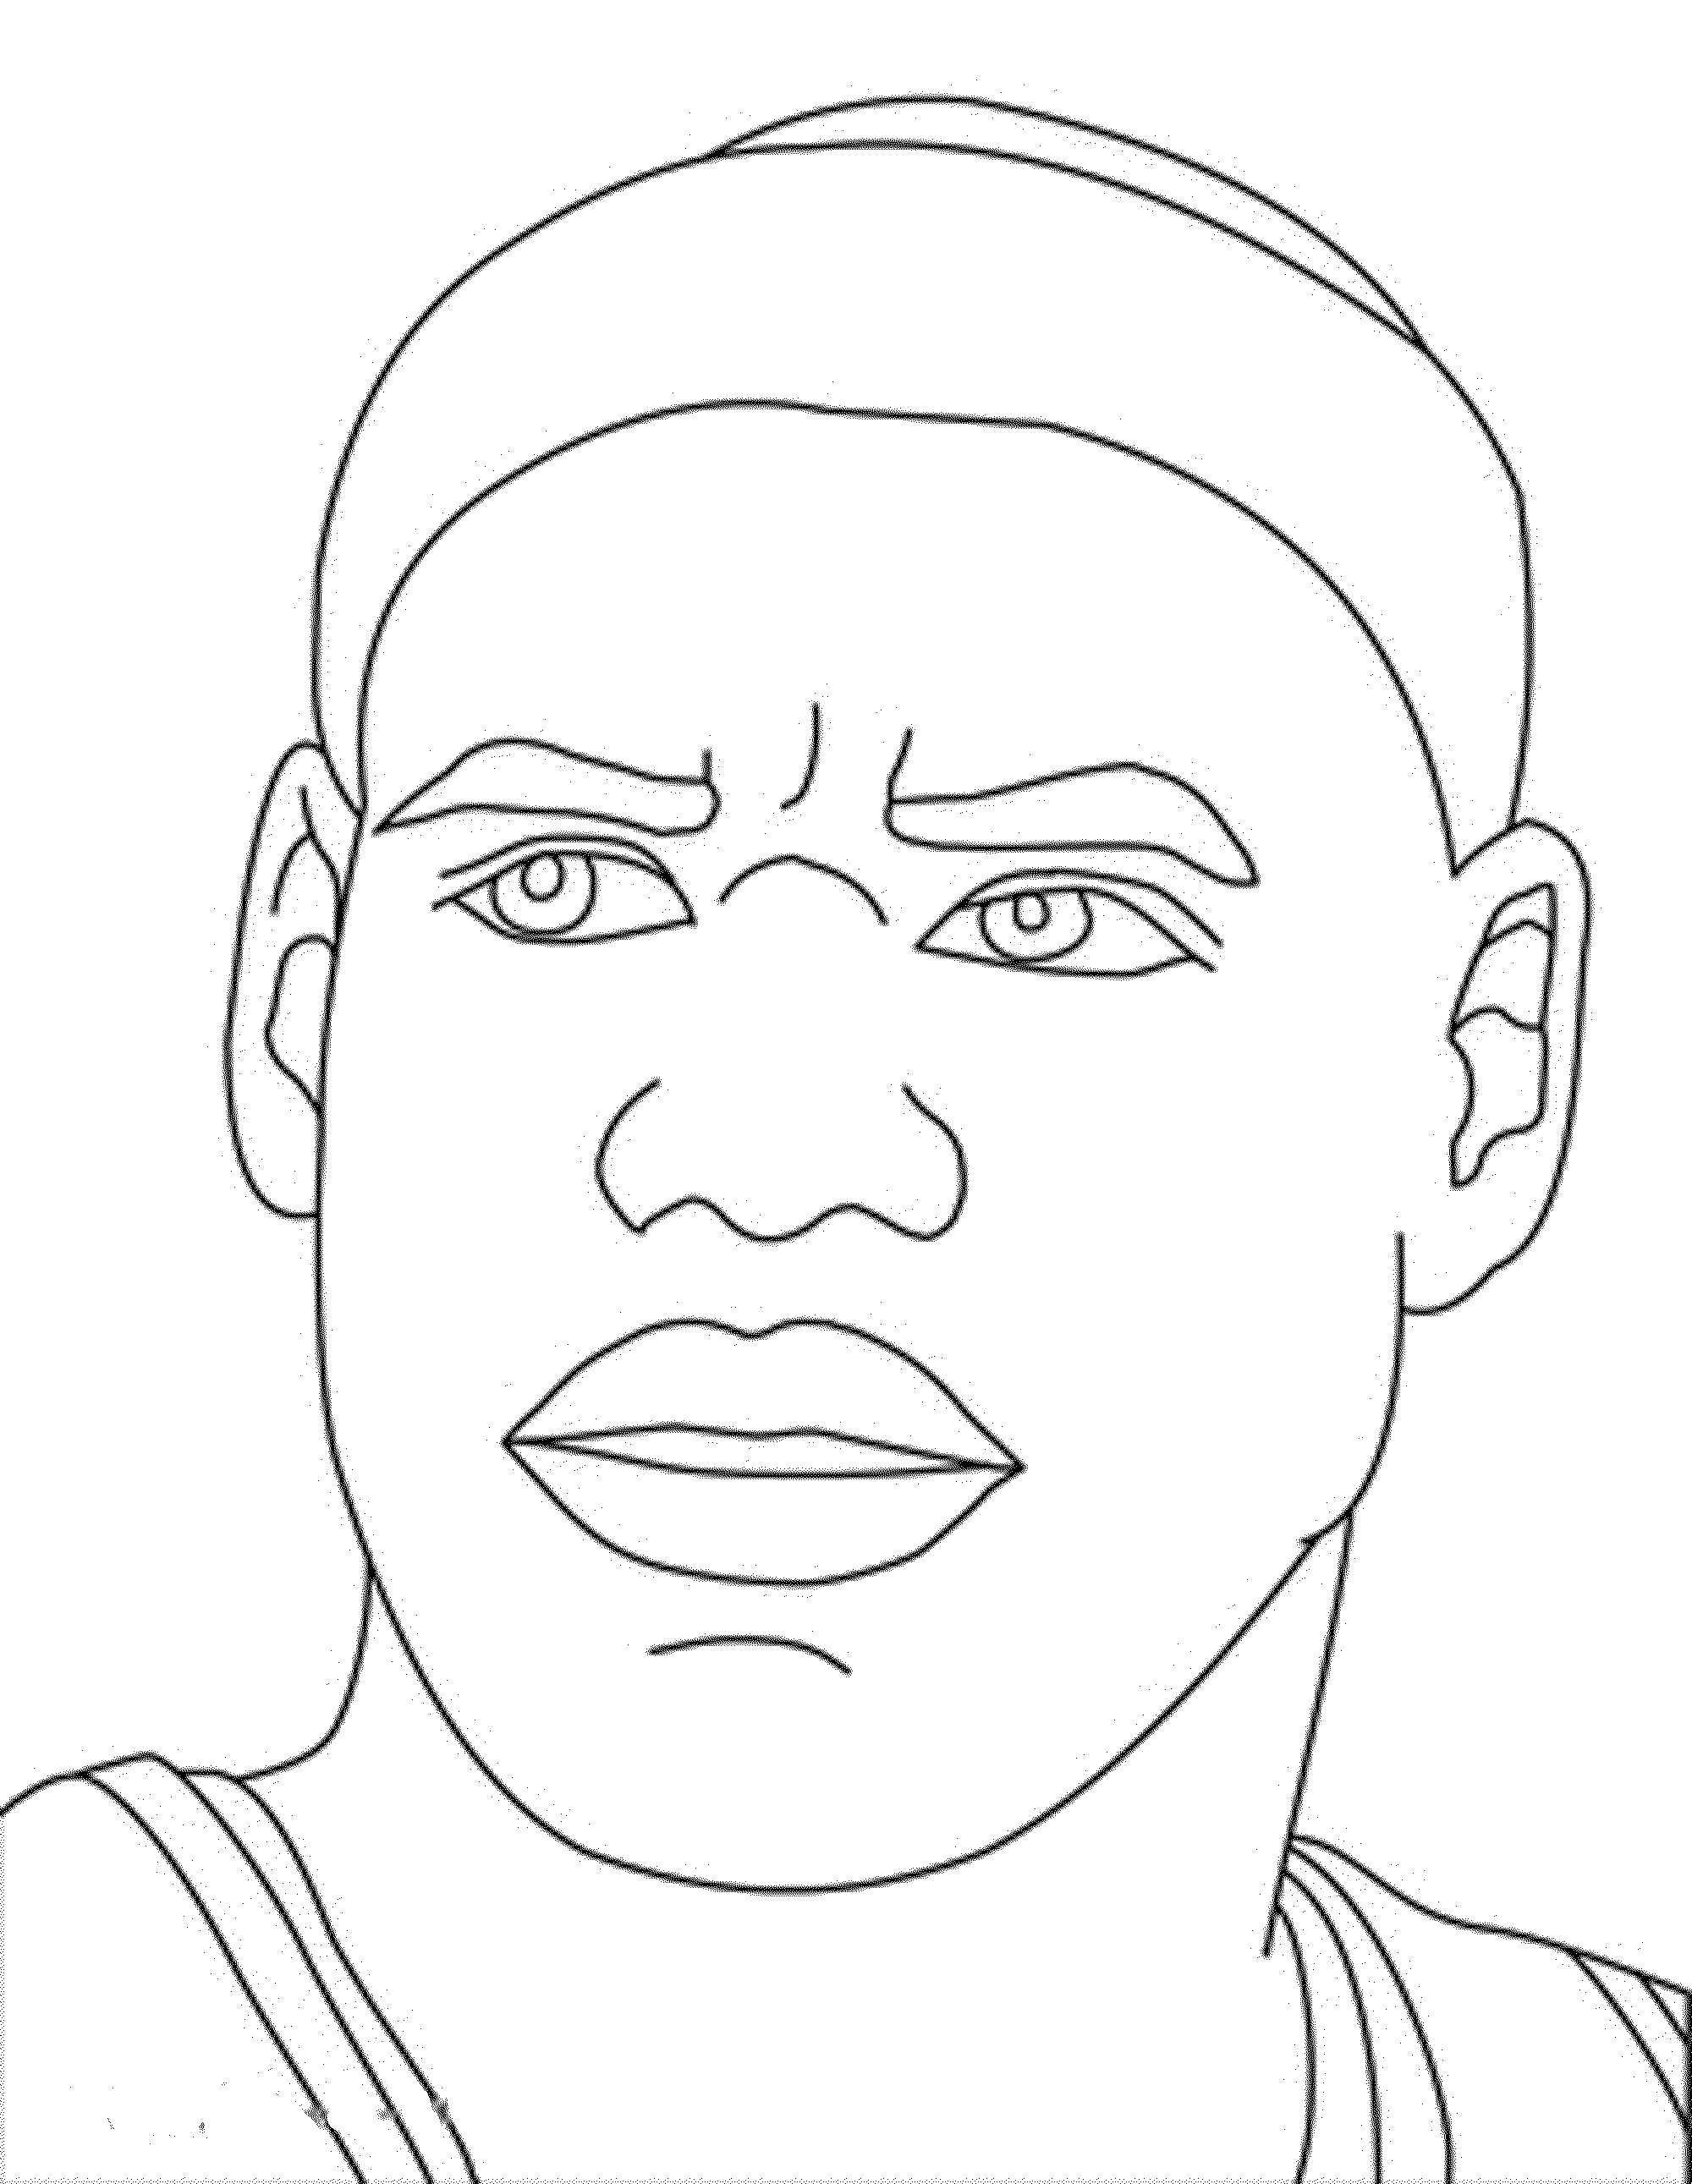 2000x2582 Lebron James Coloring Pages Freecolorngpages.co